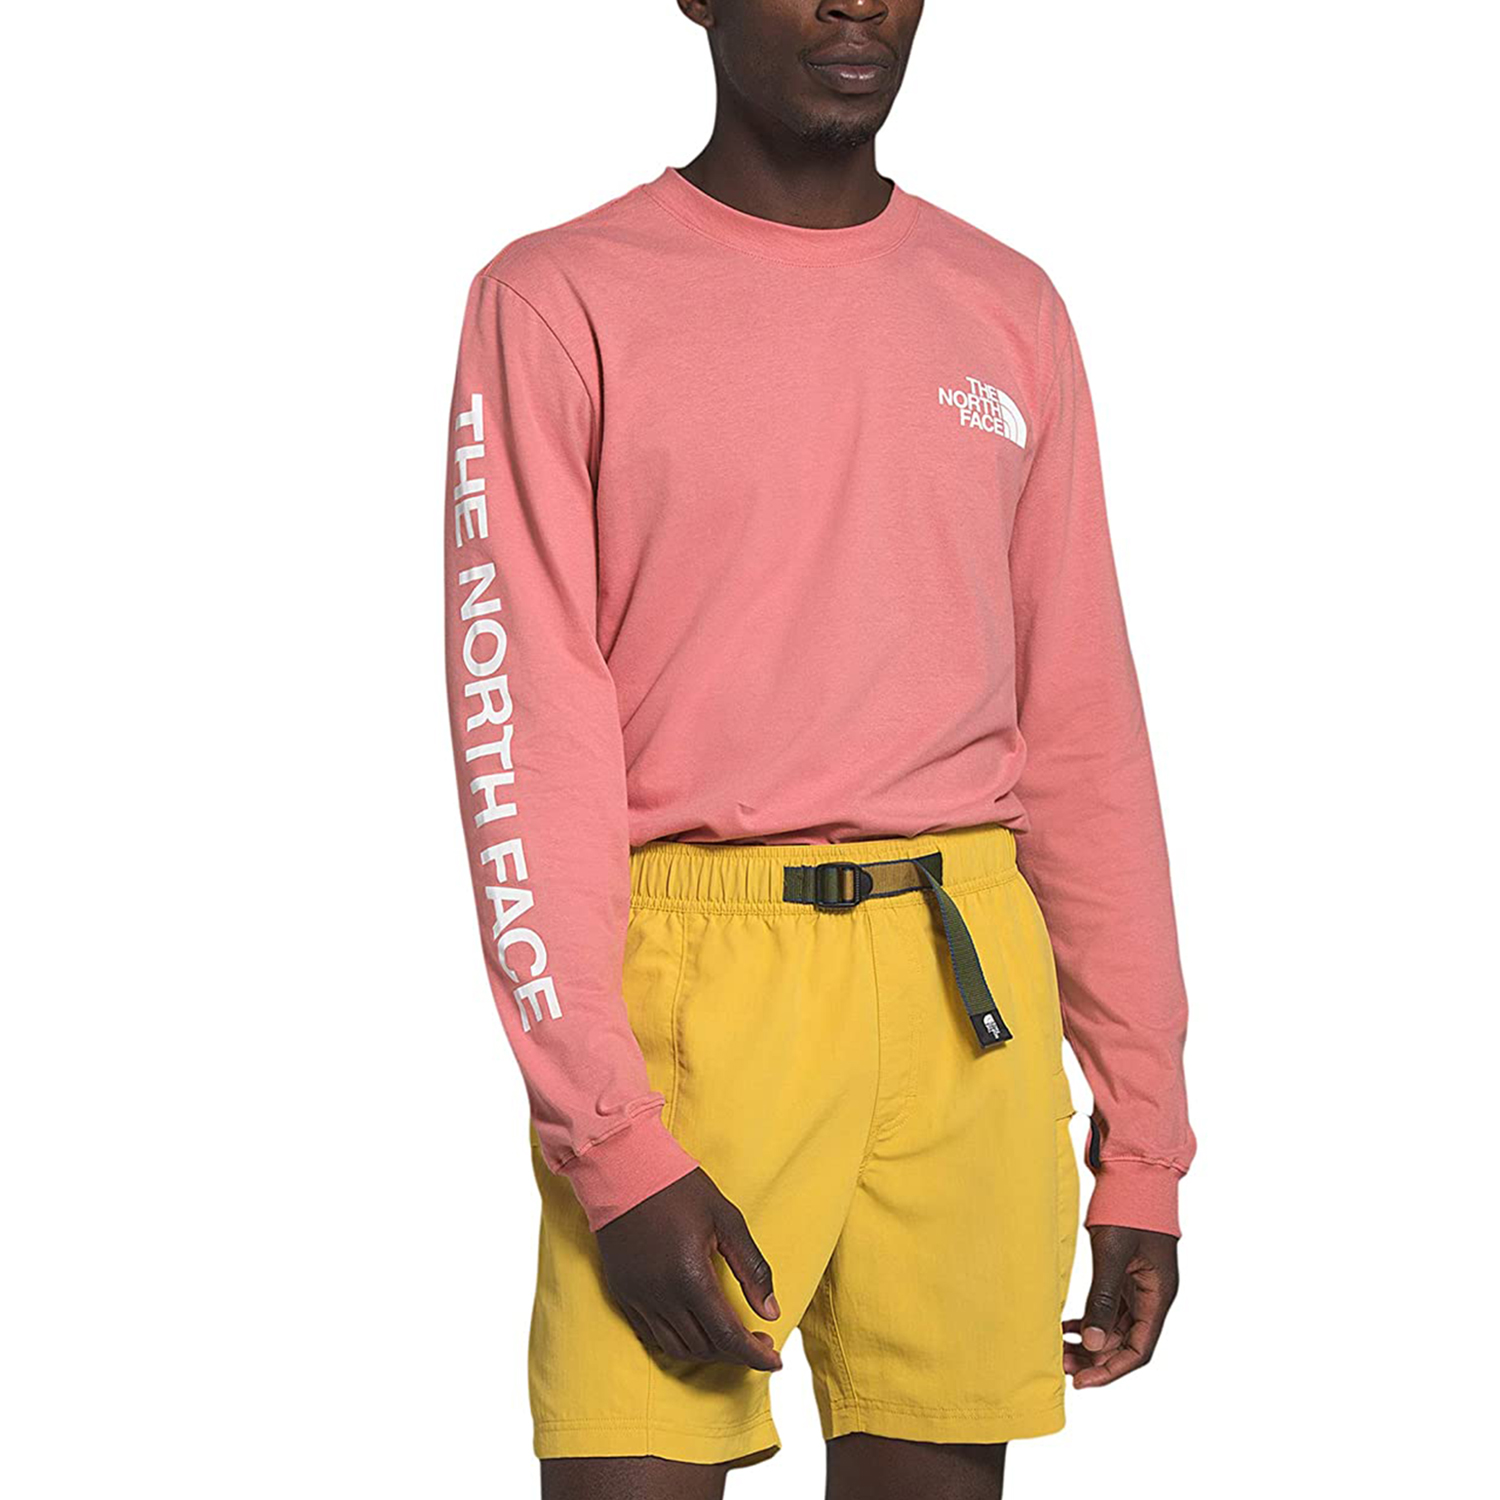 The North Face Long Sleeve TNF™ Sleeve Hit T-Shirt